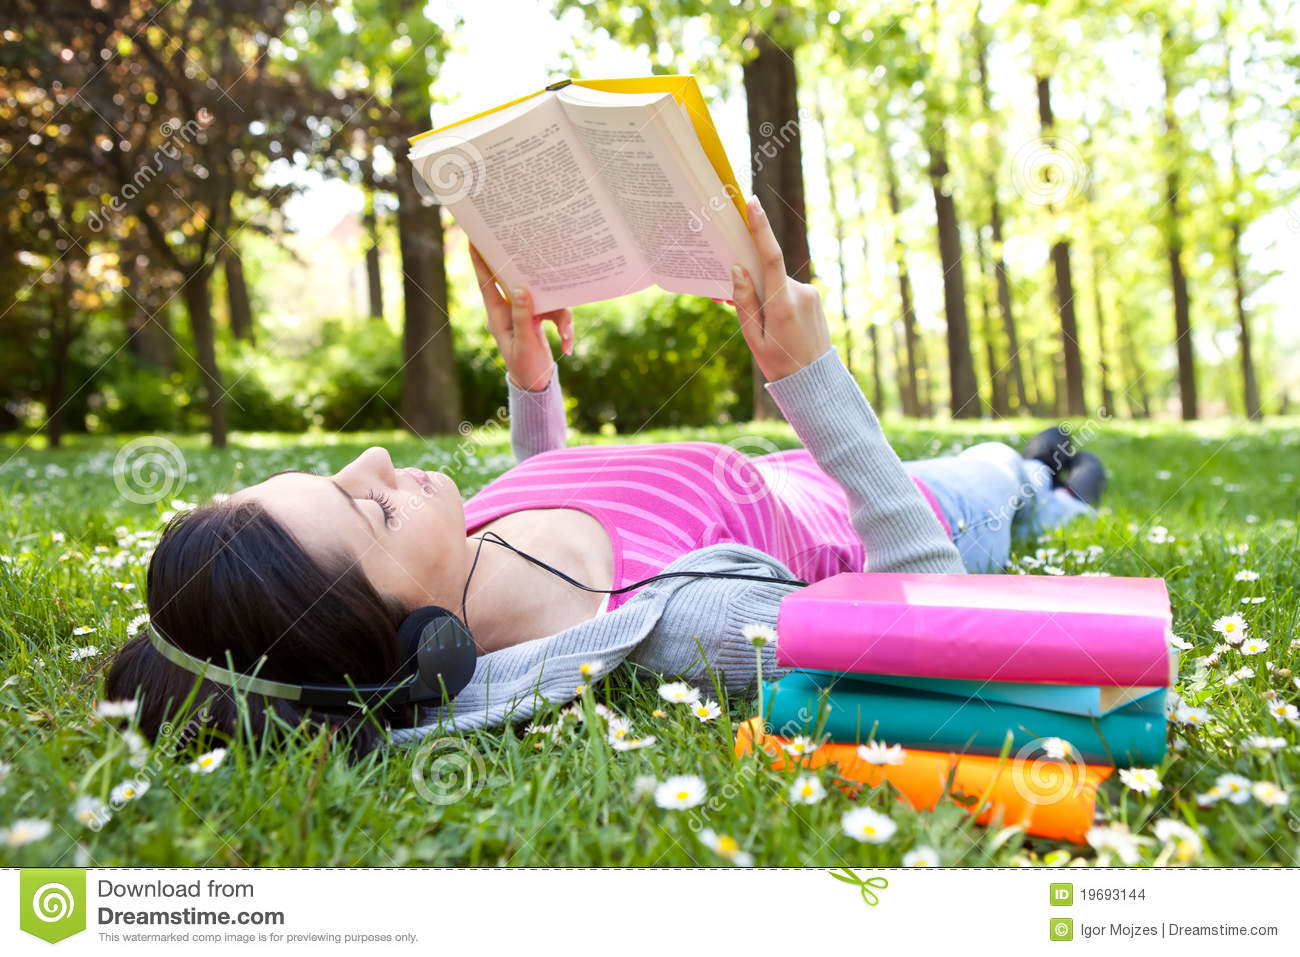 Relaxing in nature with book and music